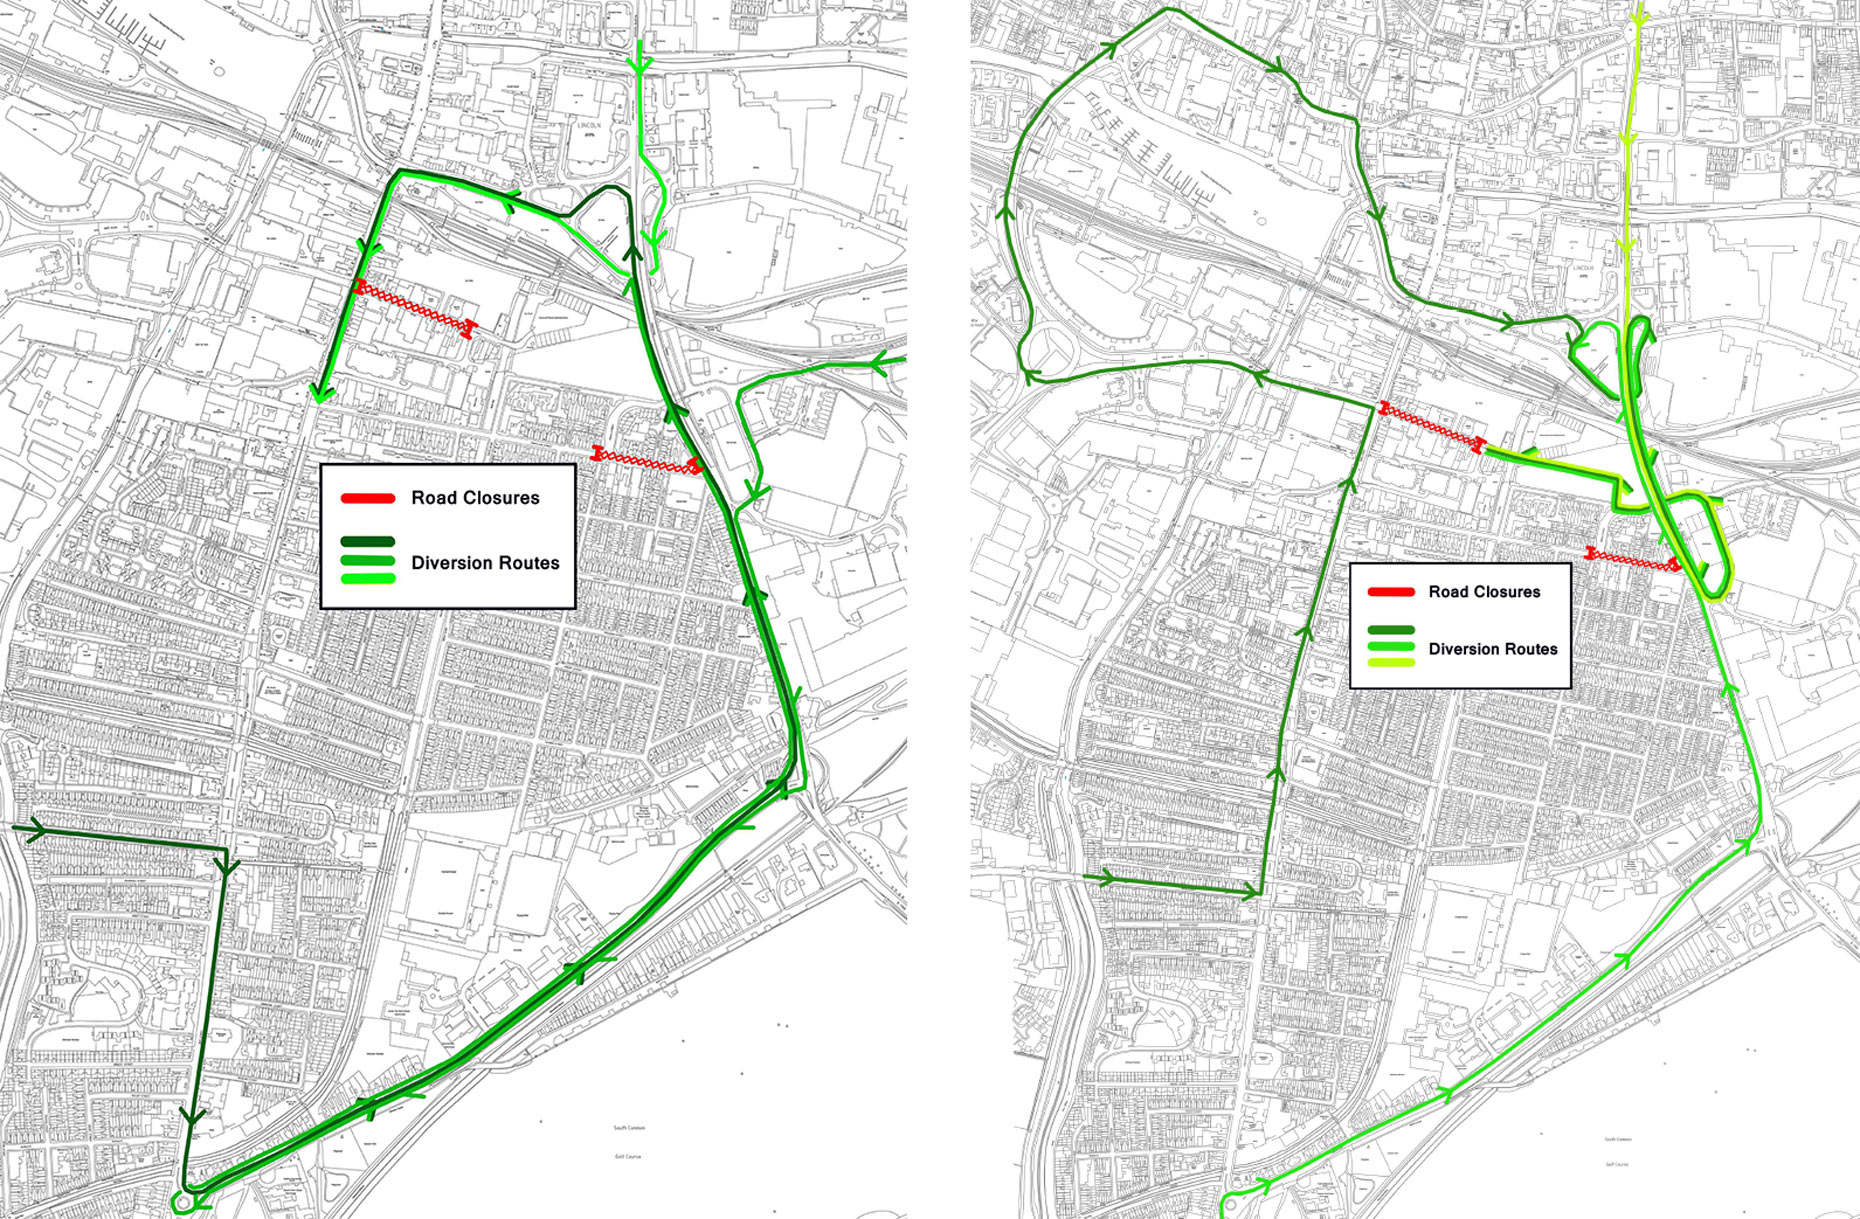 Diversion routes outlined for Tentercroft Street and Portland Street. (Click to enlarge)